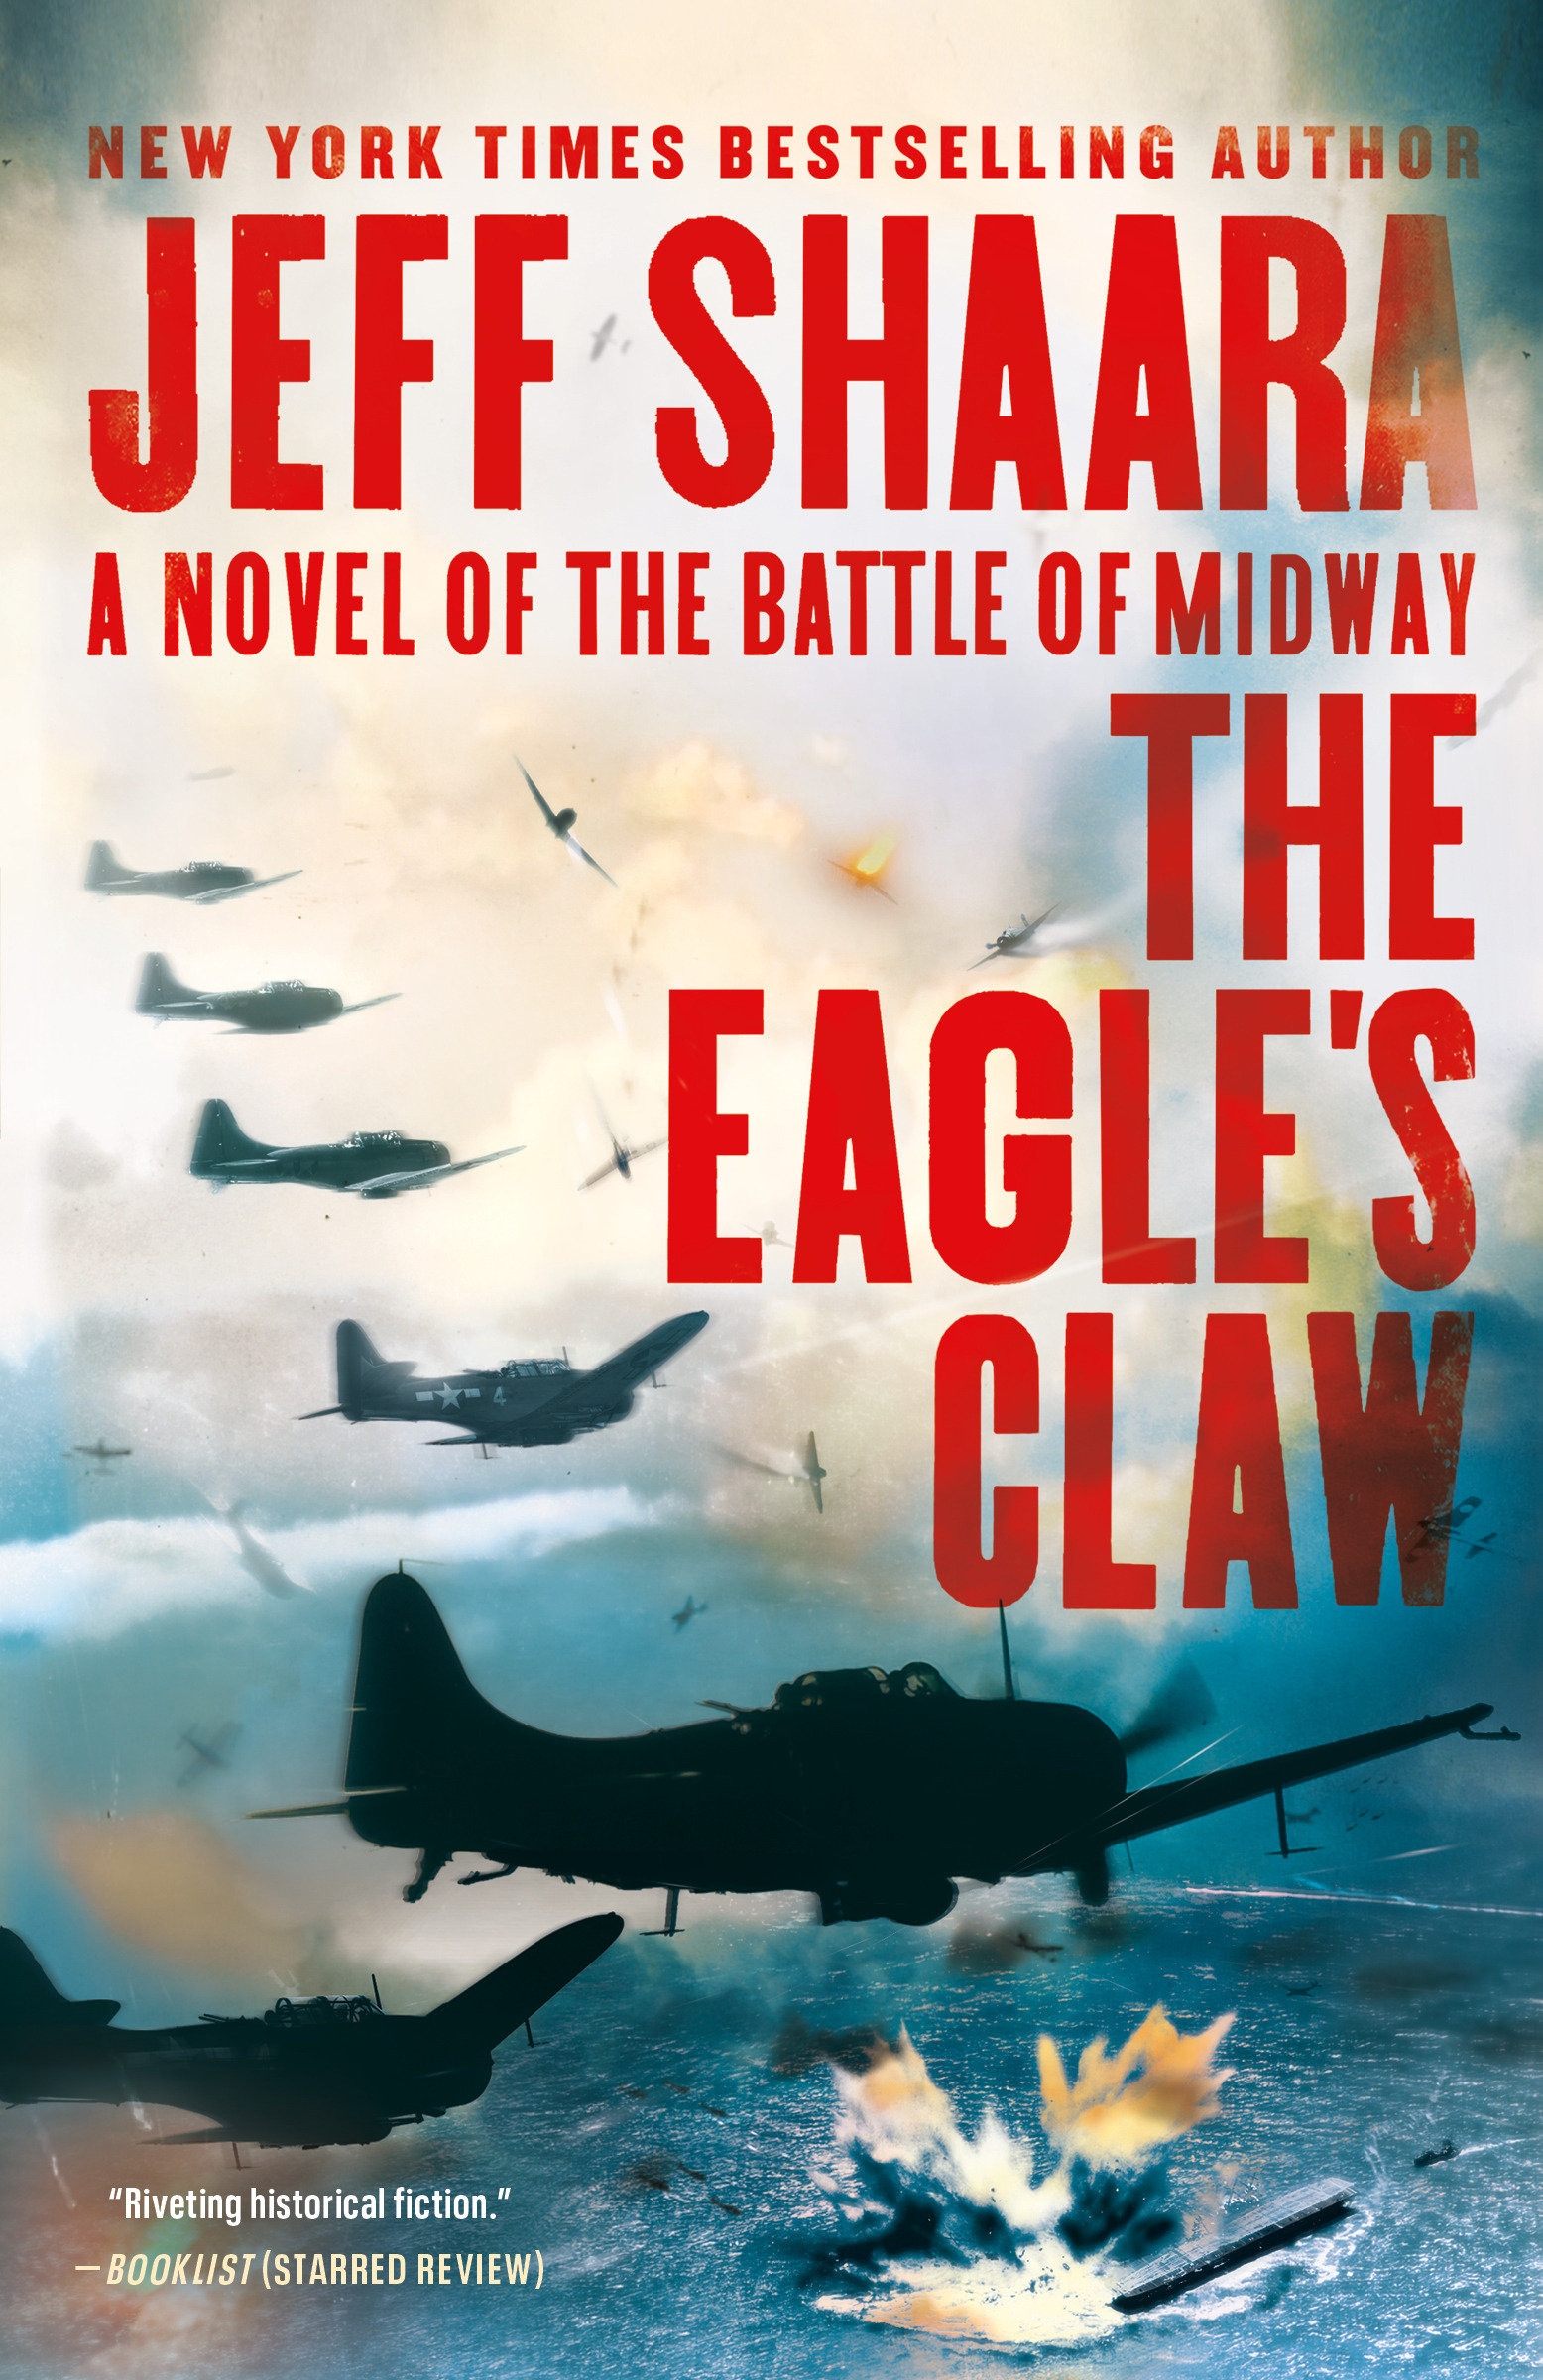 The Eagle's Claw A Novel of the Battle of Midway